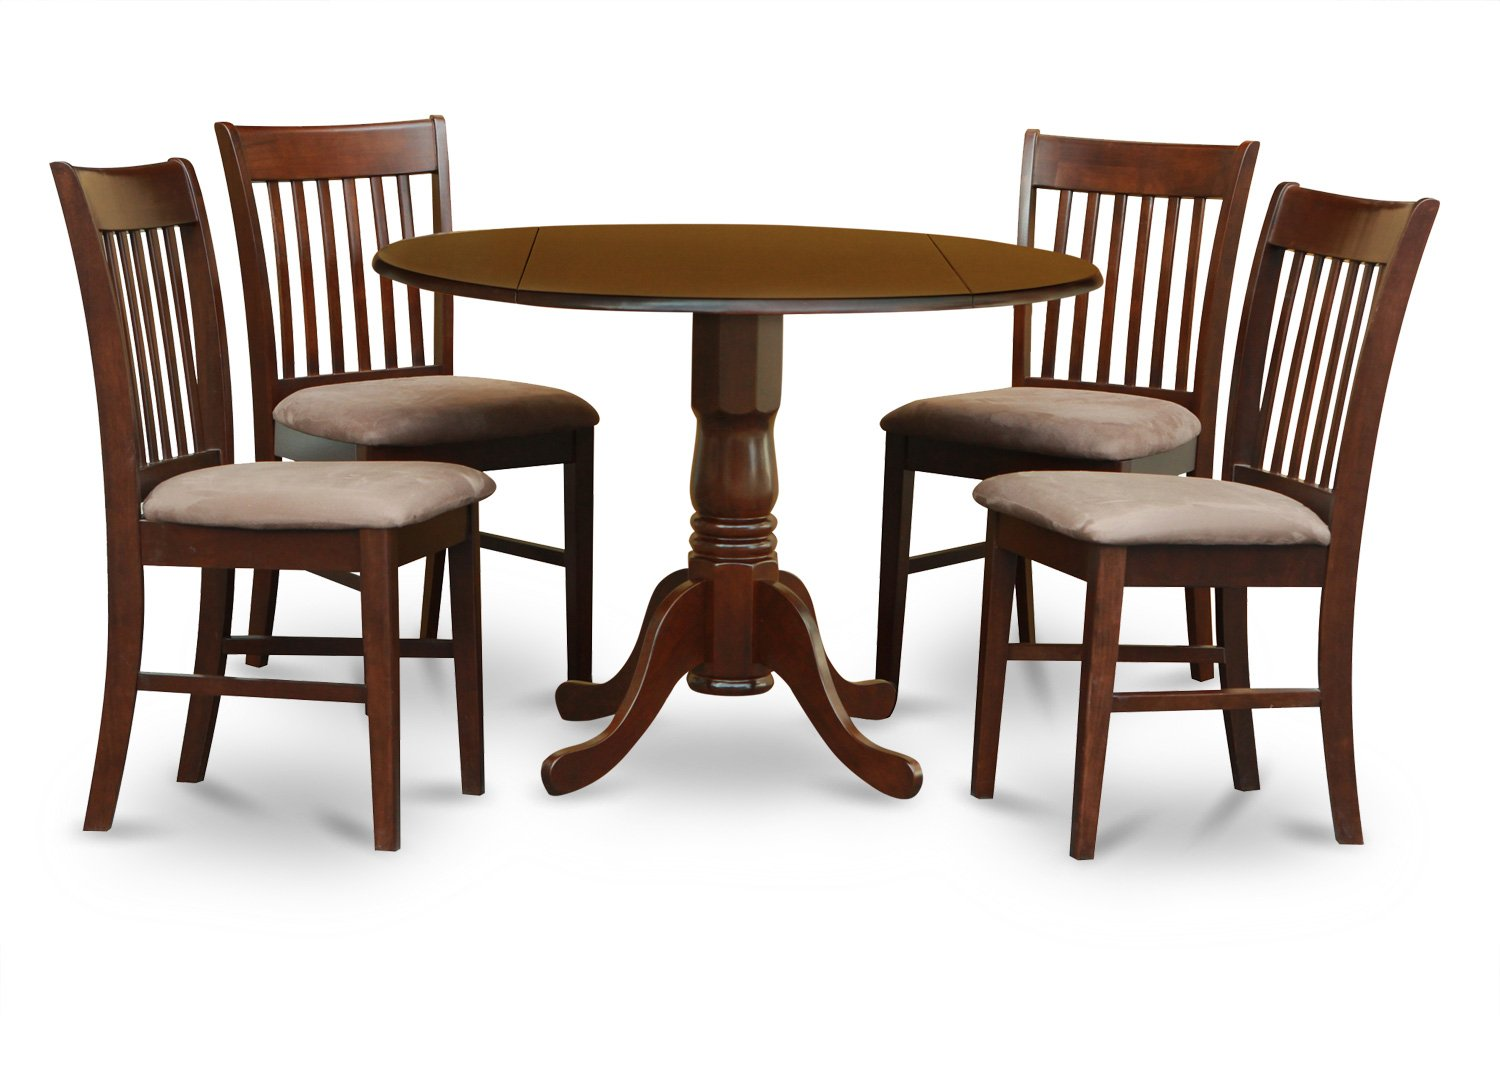 East West Furniture 5-Piece Kitchen Table Set, Mahogany Finish, Microfiber Upholstered Seat,